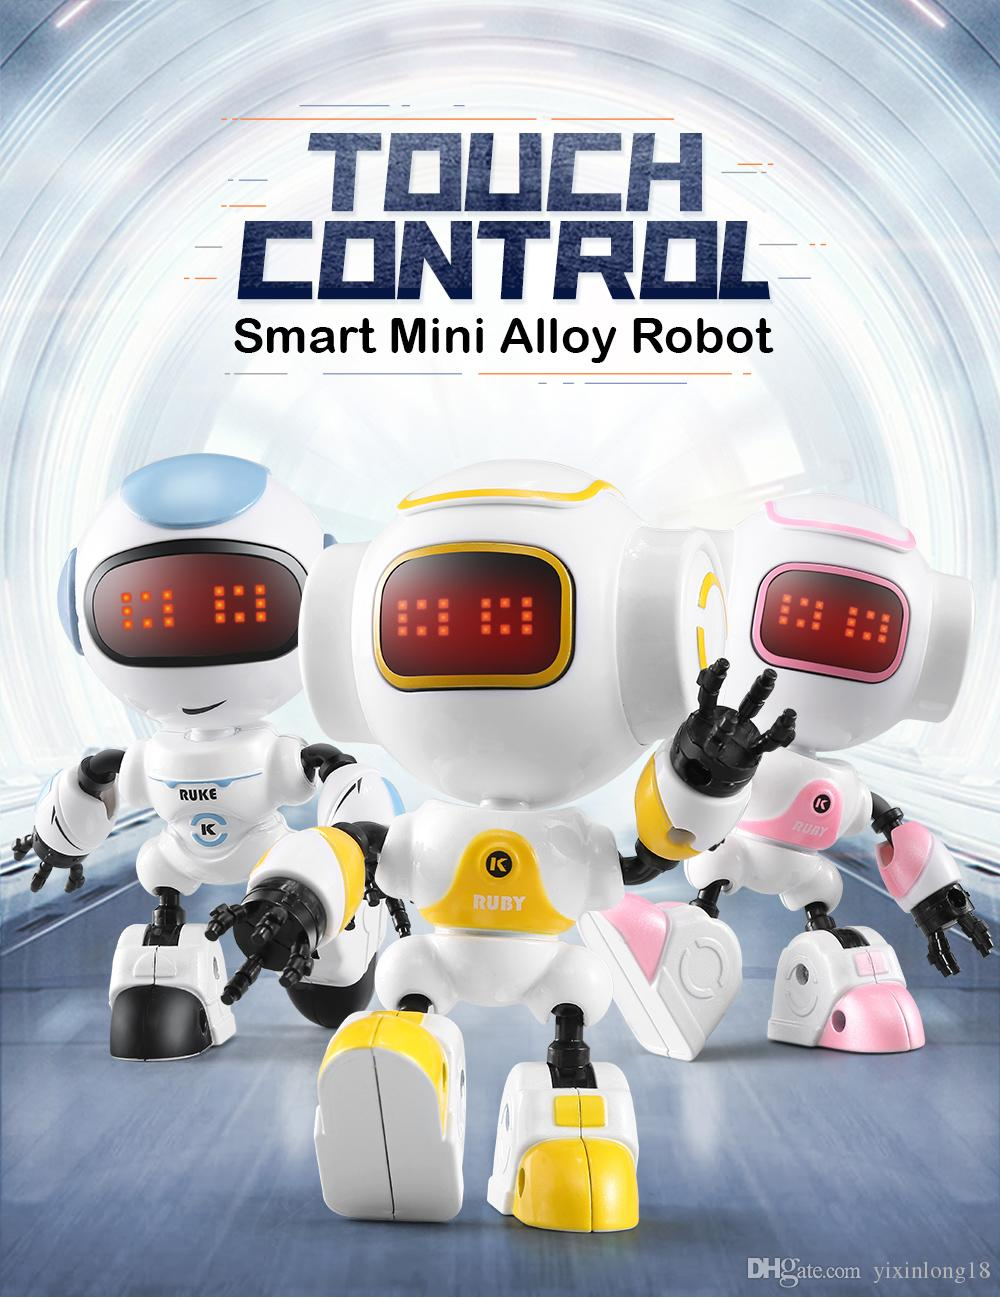 JJRC R8 R9 Smart Mini Alloy Robot Touch Response Robot Voice, Light Effect  ,Used as a phone holder,DIY decoration